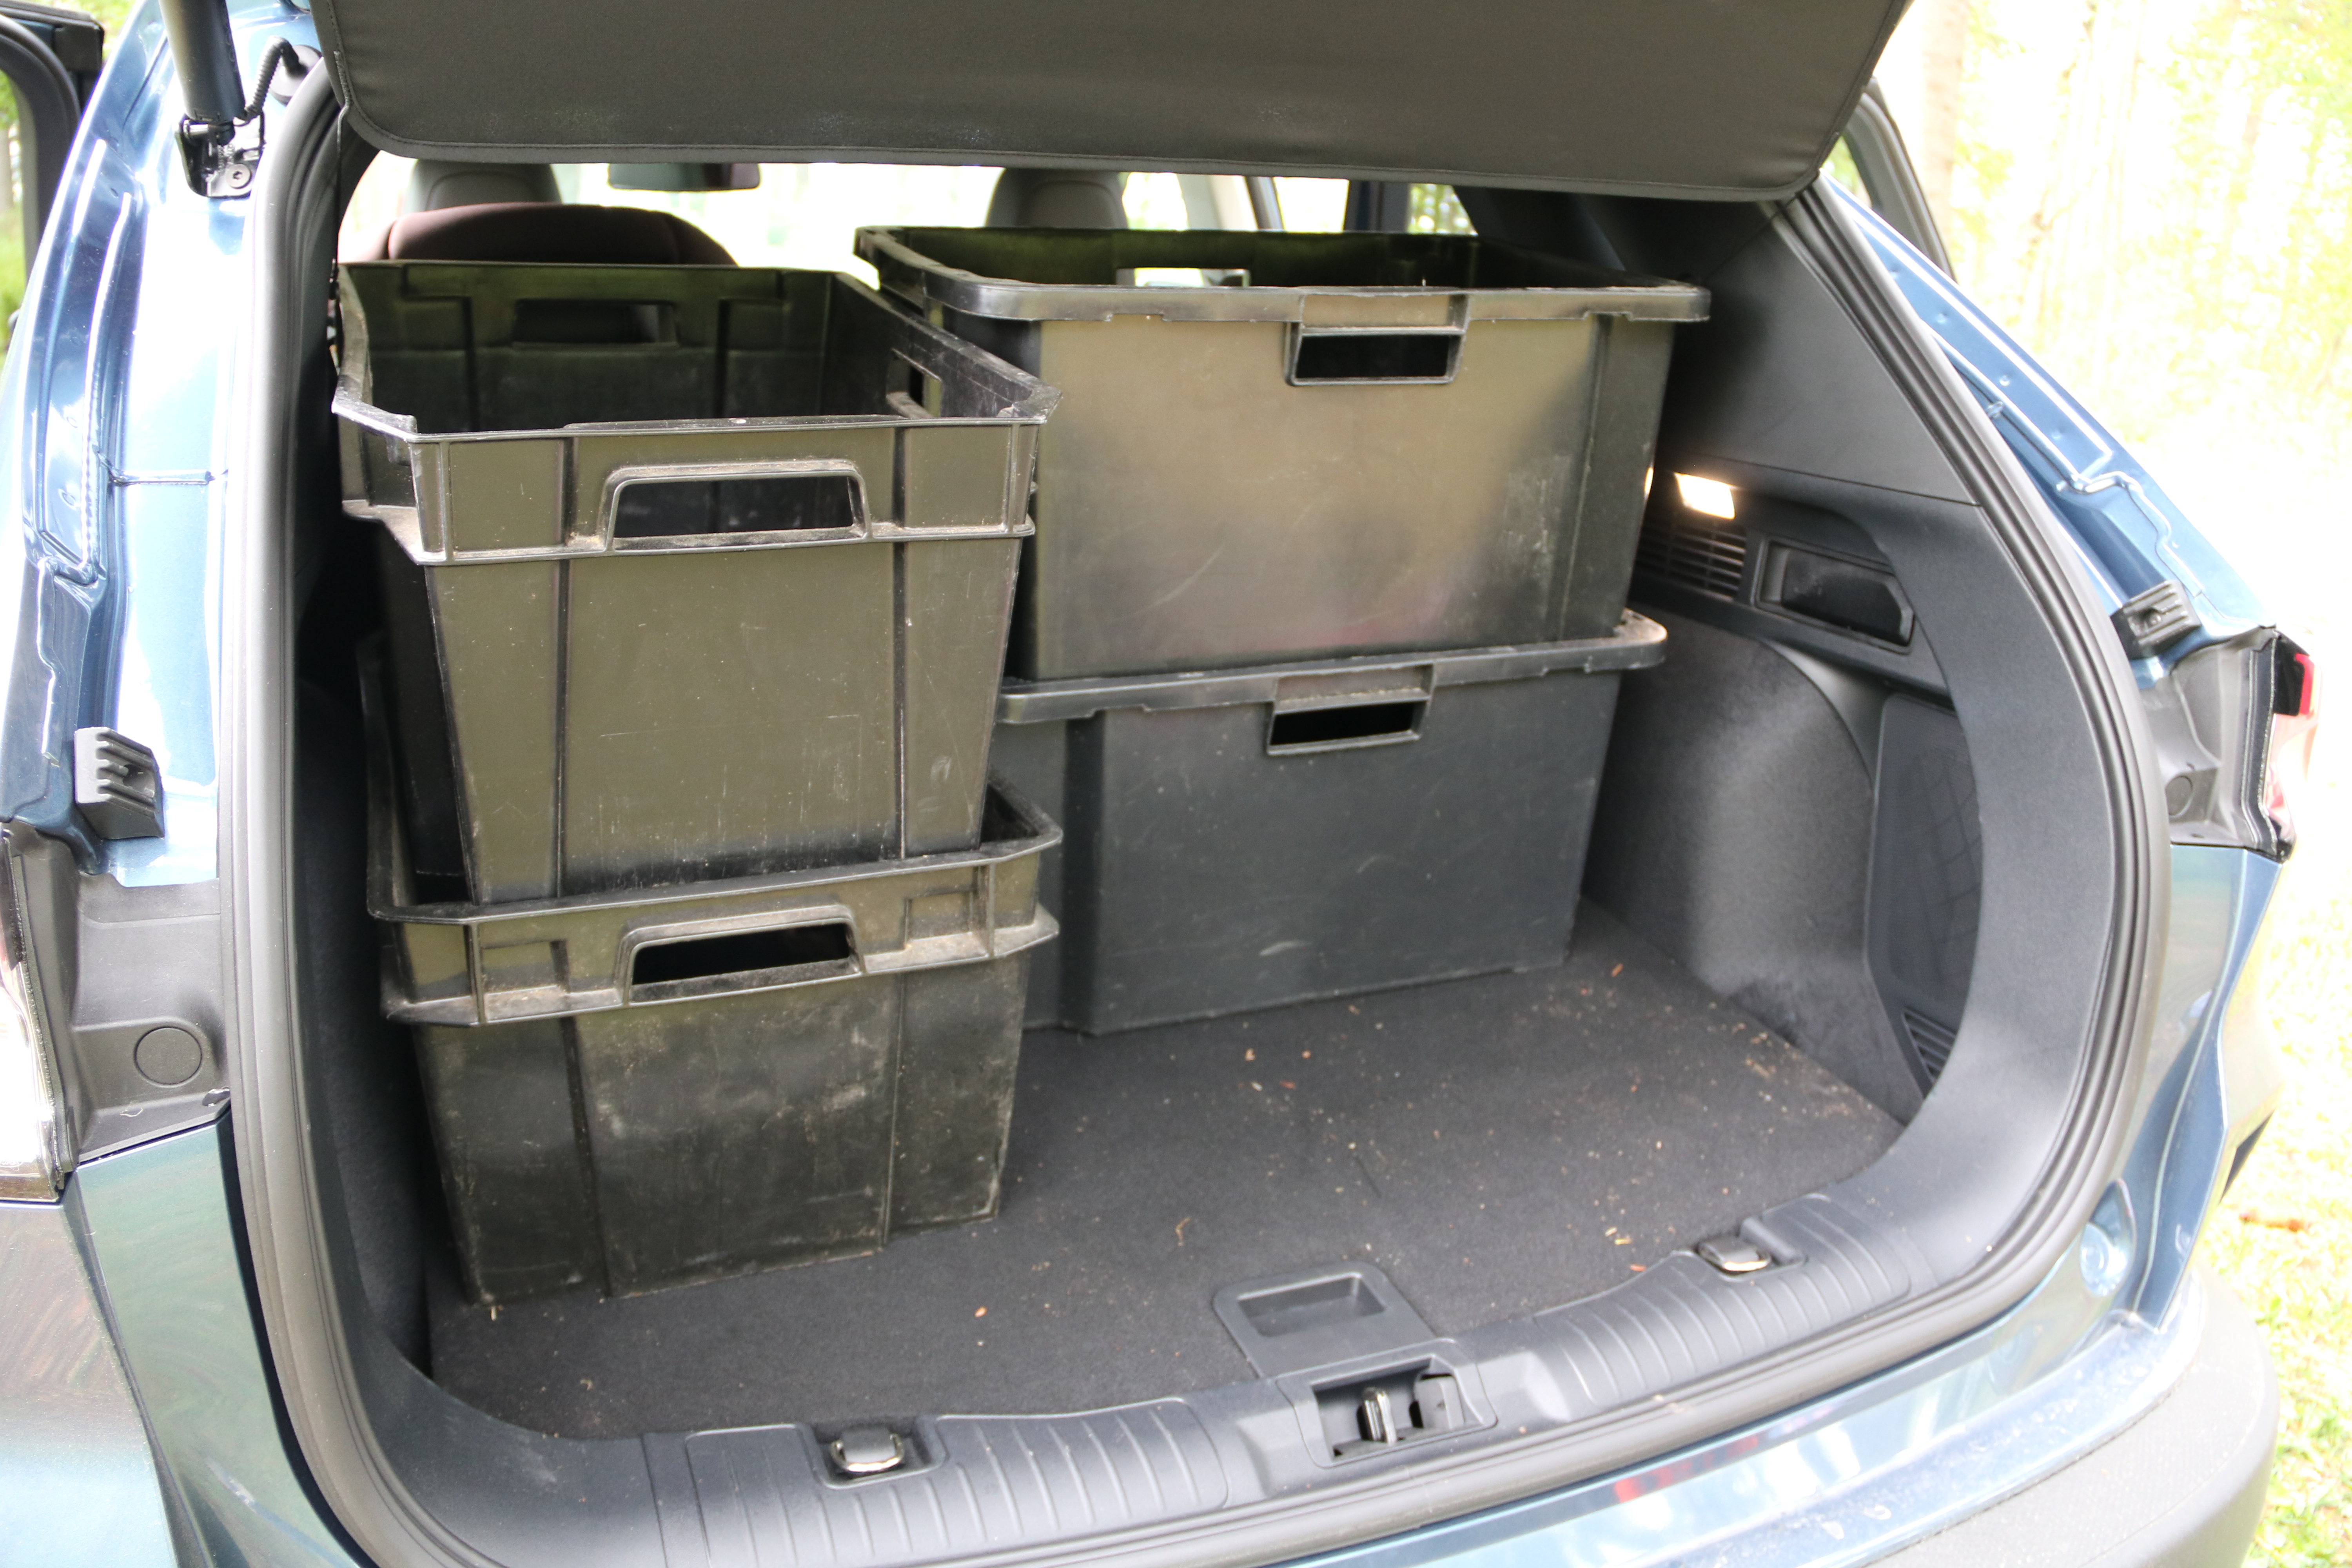 Ford Kuga PHEV trunk filled with four (five) plastic bins